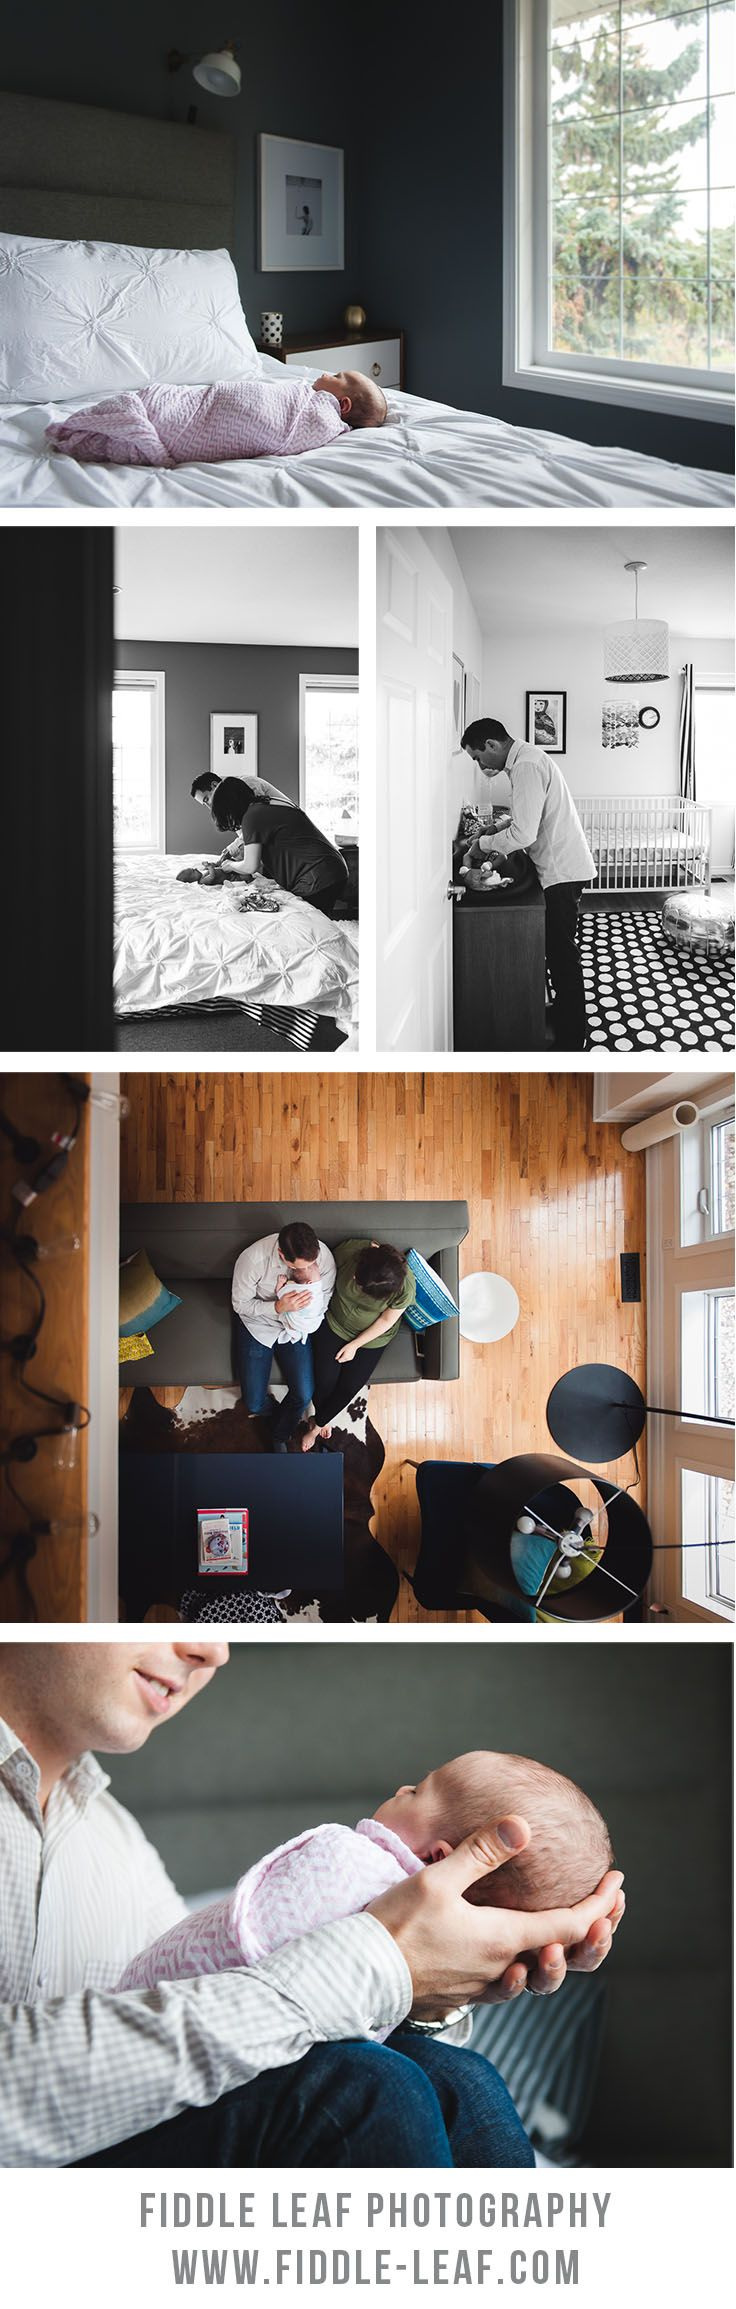 Beautiful in-home newborn photo session by Fiddle Leaf Photography. Edmonton Newborn Photographer. http://www.fiddle-leaf.com/newborn-sessions/